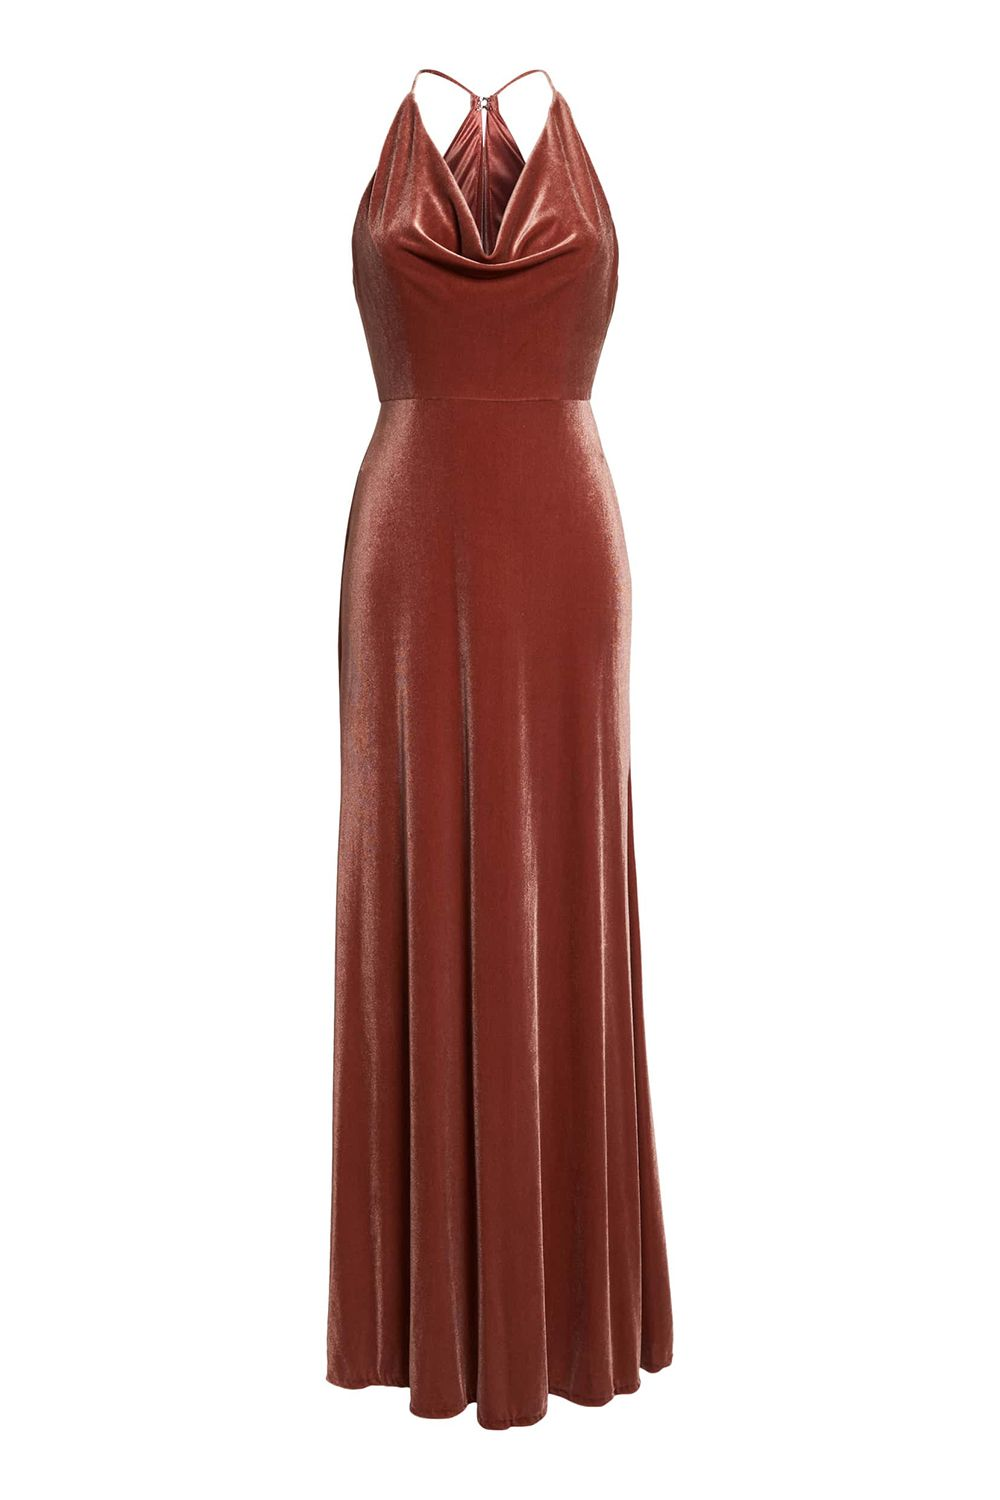 Dress Ideas For Summer Wedding Guest In How To Select